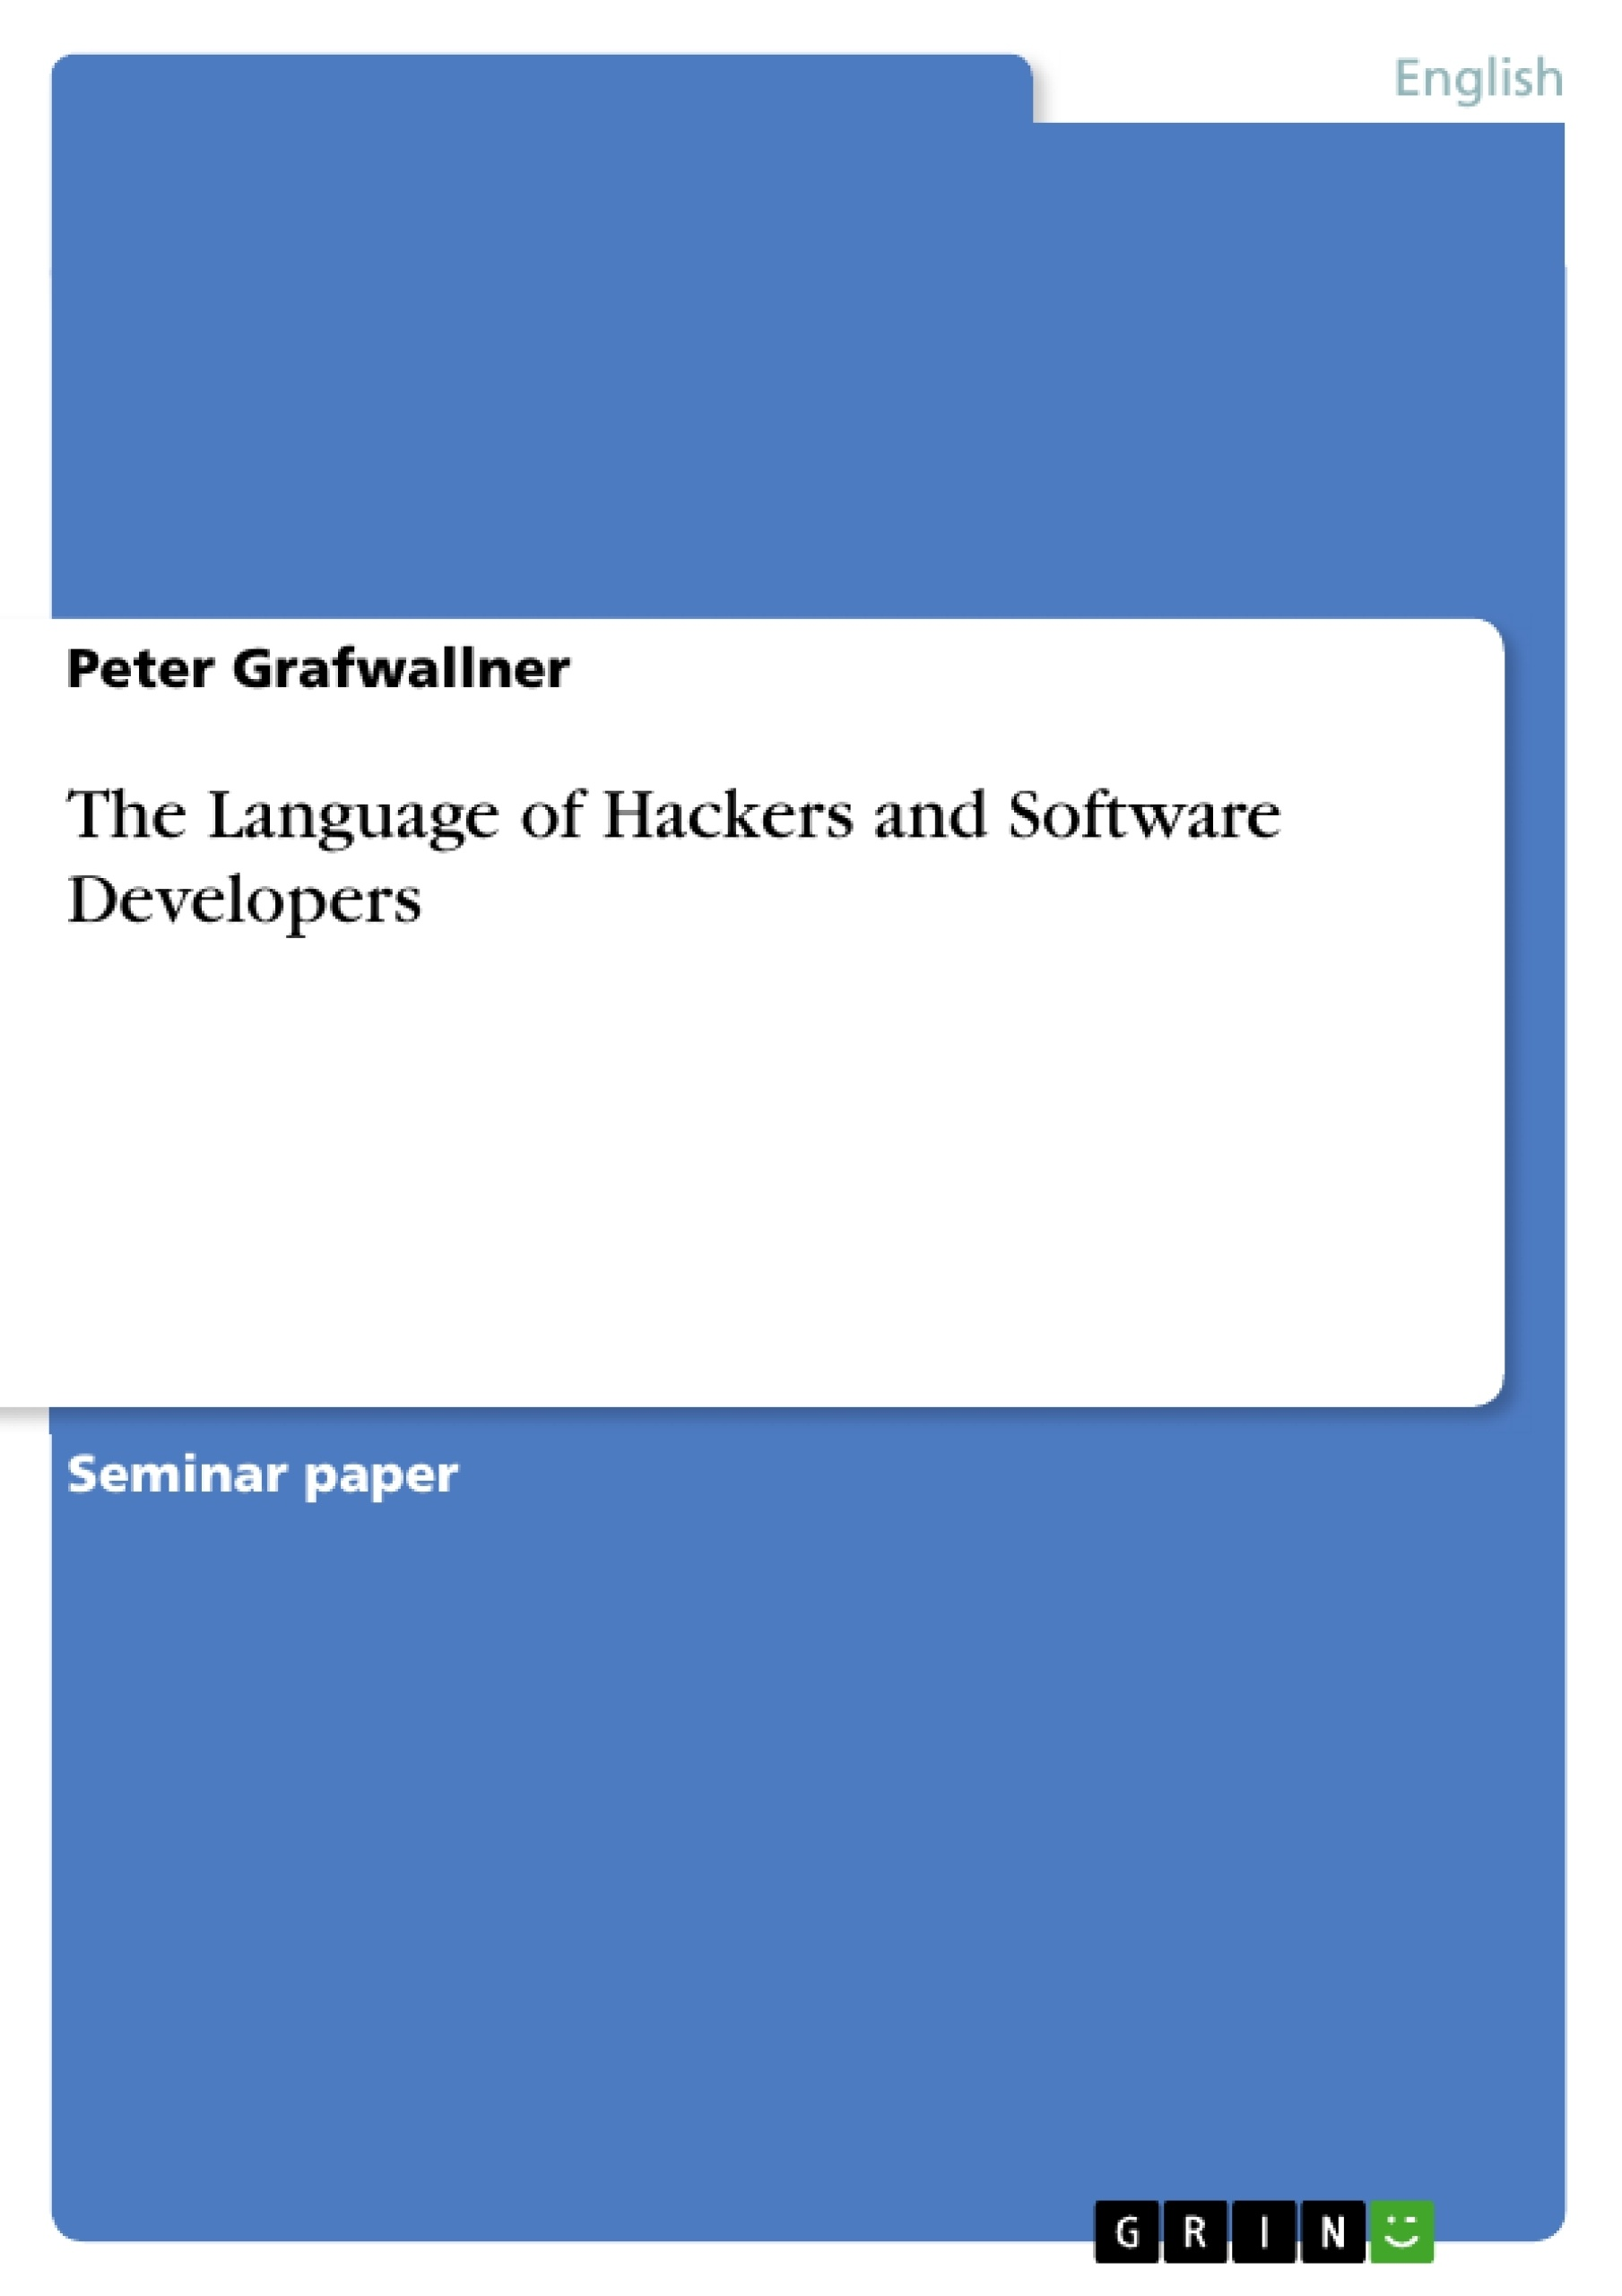 Title: The Language of Hackers and Software Developers